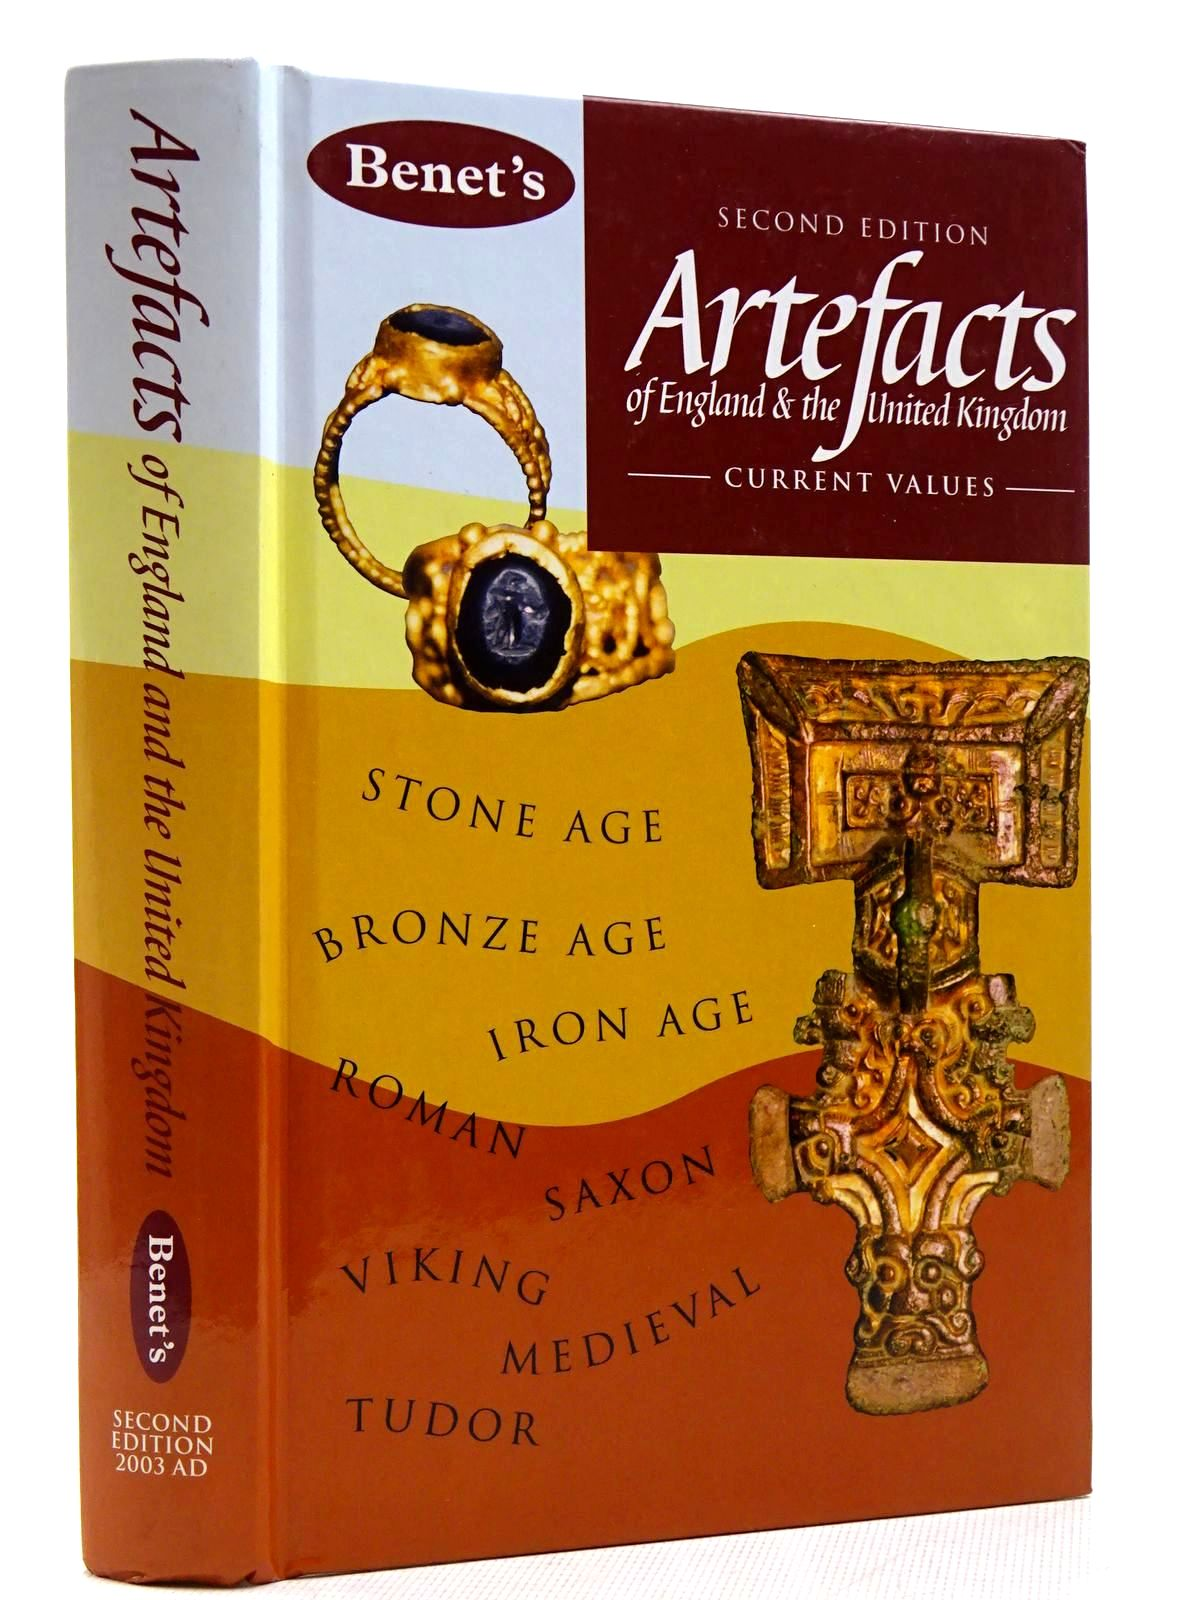 Photo of BENET'S ARTEFACTS OF ENGLAND & THE UNITED KINGDOM CURRENT VALUES written by Murawski, Paul G. published by Paul G. Murawski (STOCK CODE: 2128899)  for sale by Stella & Rose's Books